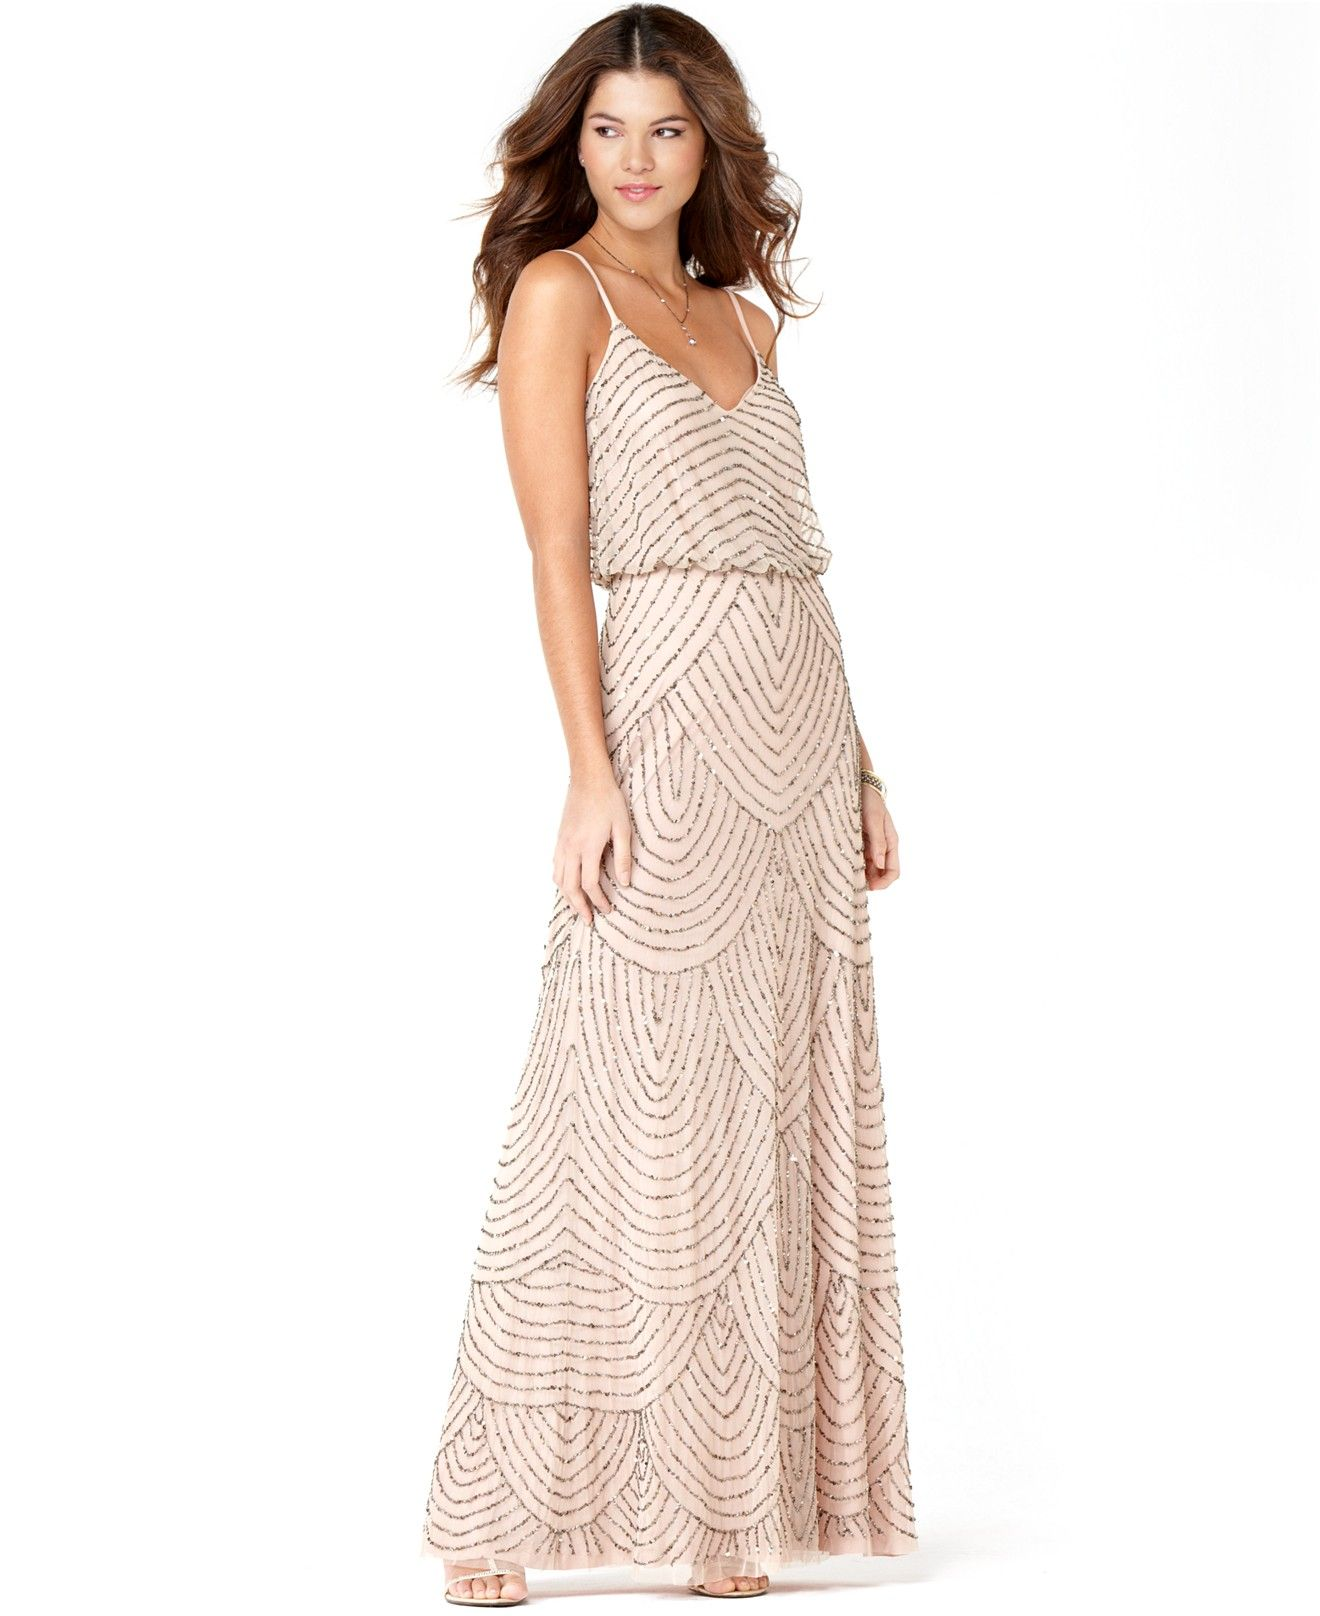 Adrianna Papell Beaded Blouson Gown | Adrianna papell, Rehearsal ...